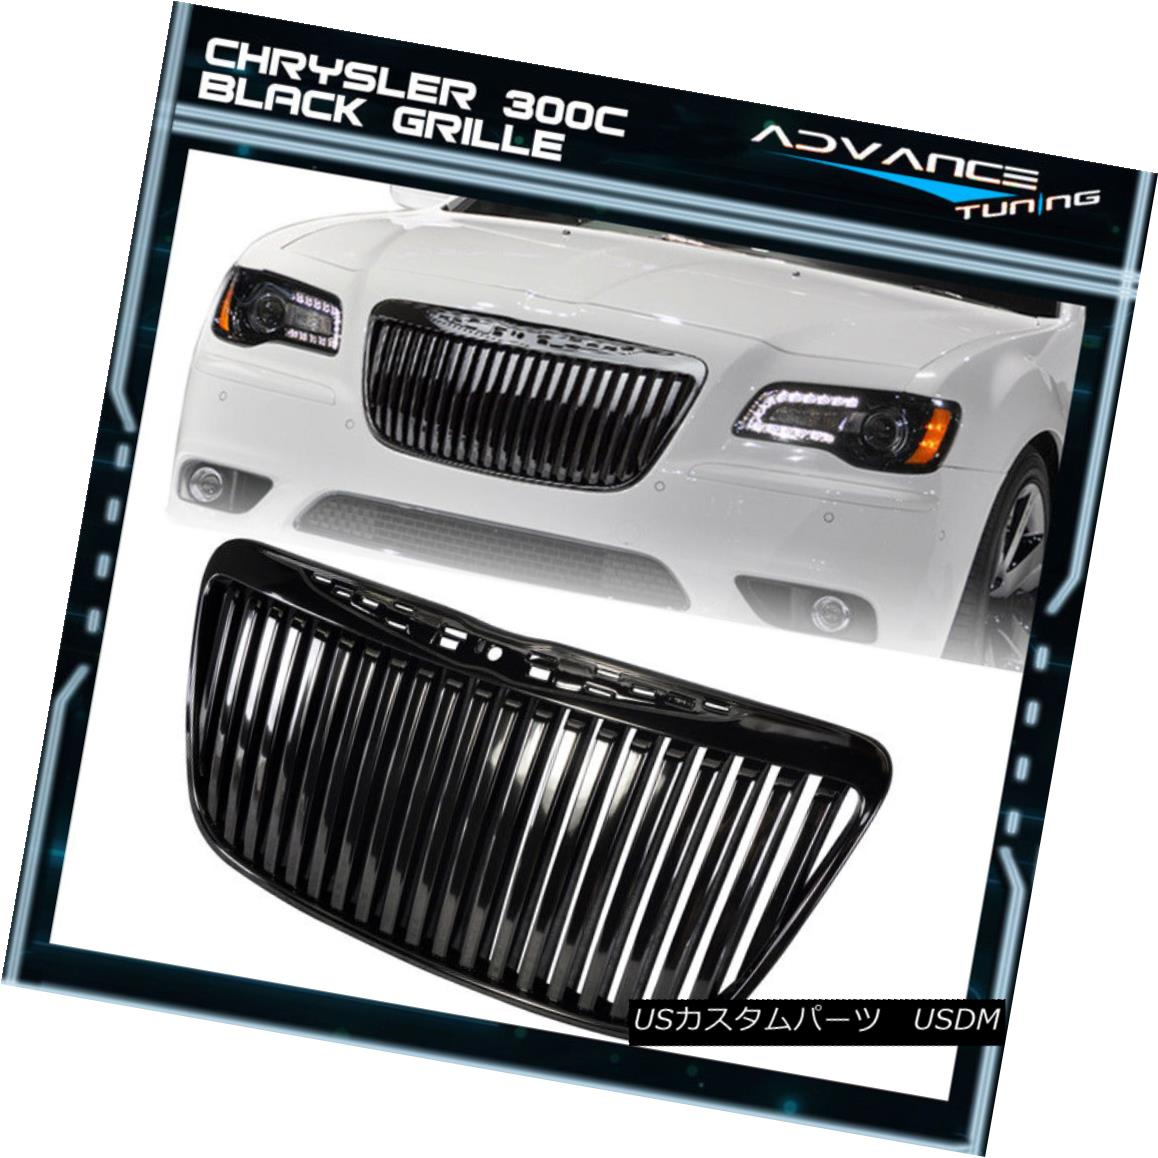 グリル For 11-12 Chrysler 300C VERTICAL Style Front Hood Grille Replacement Grill Black 11-12 Chrysler 300C VERTICALスタイルフロントフードグリルグリルブラック